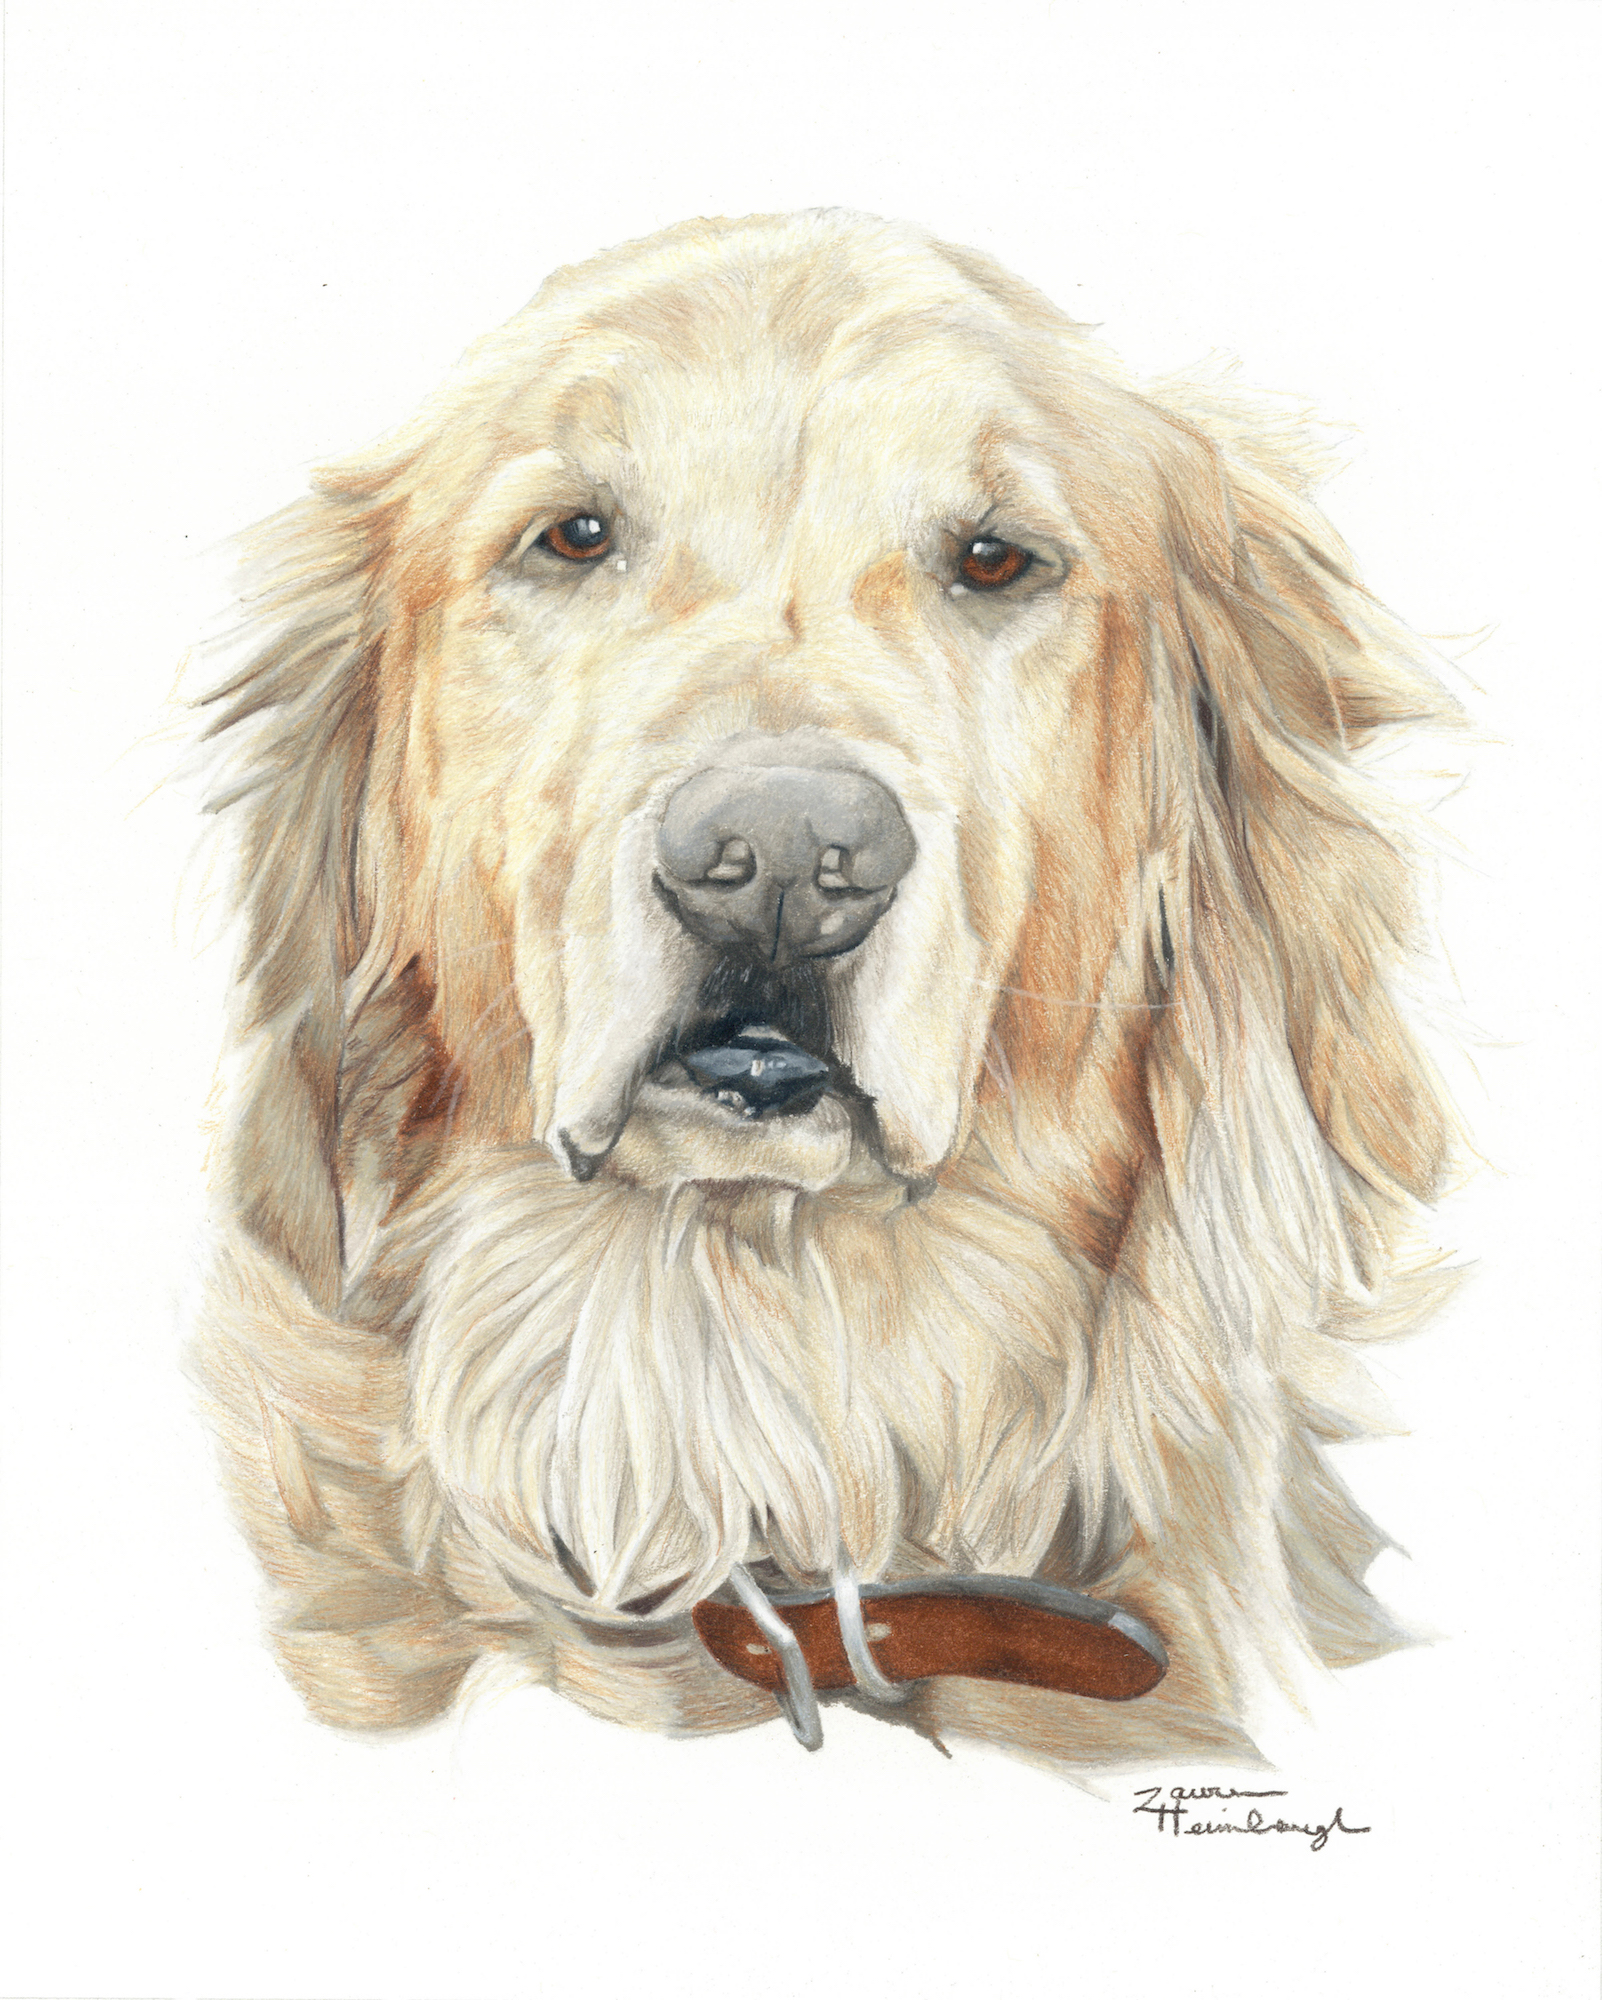 Barclay the Golden Retriever (2014)